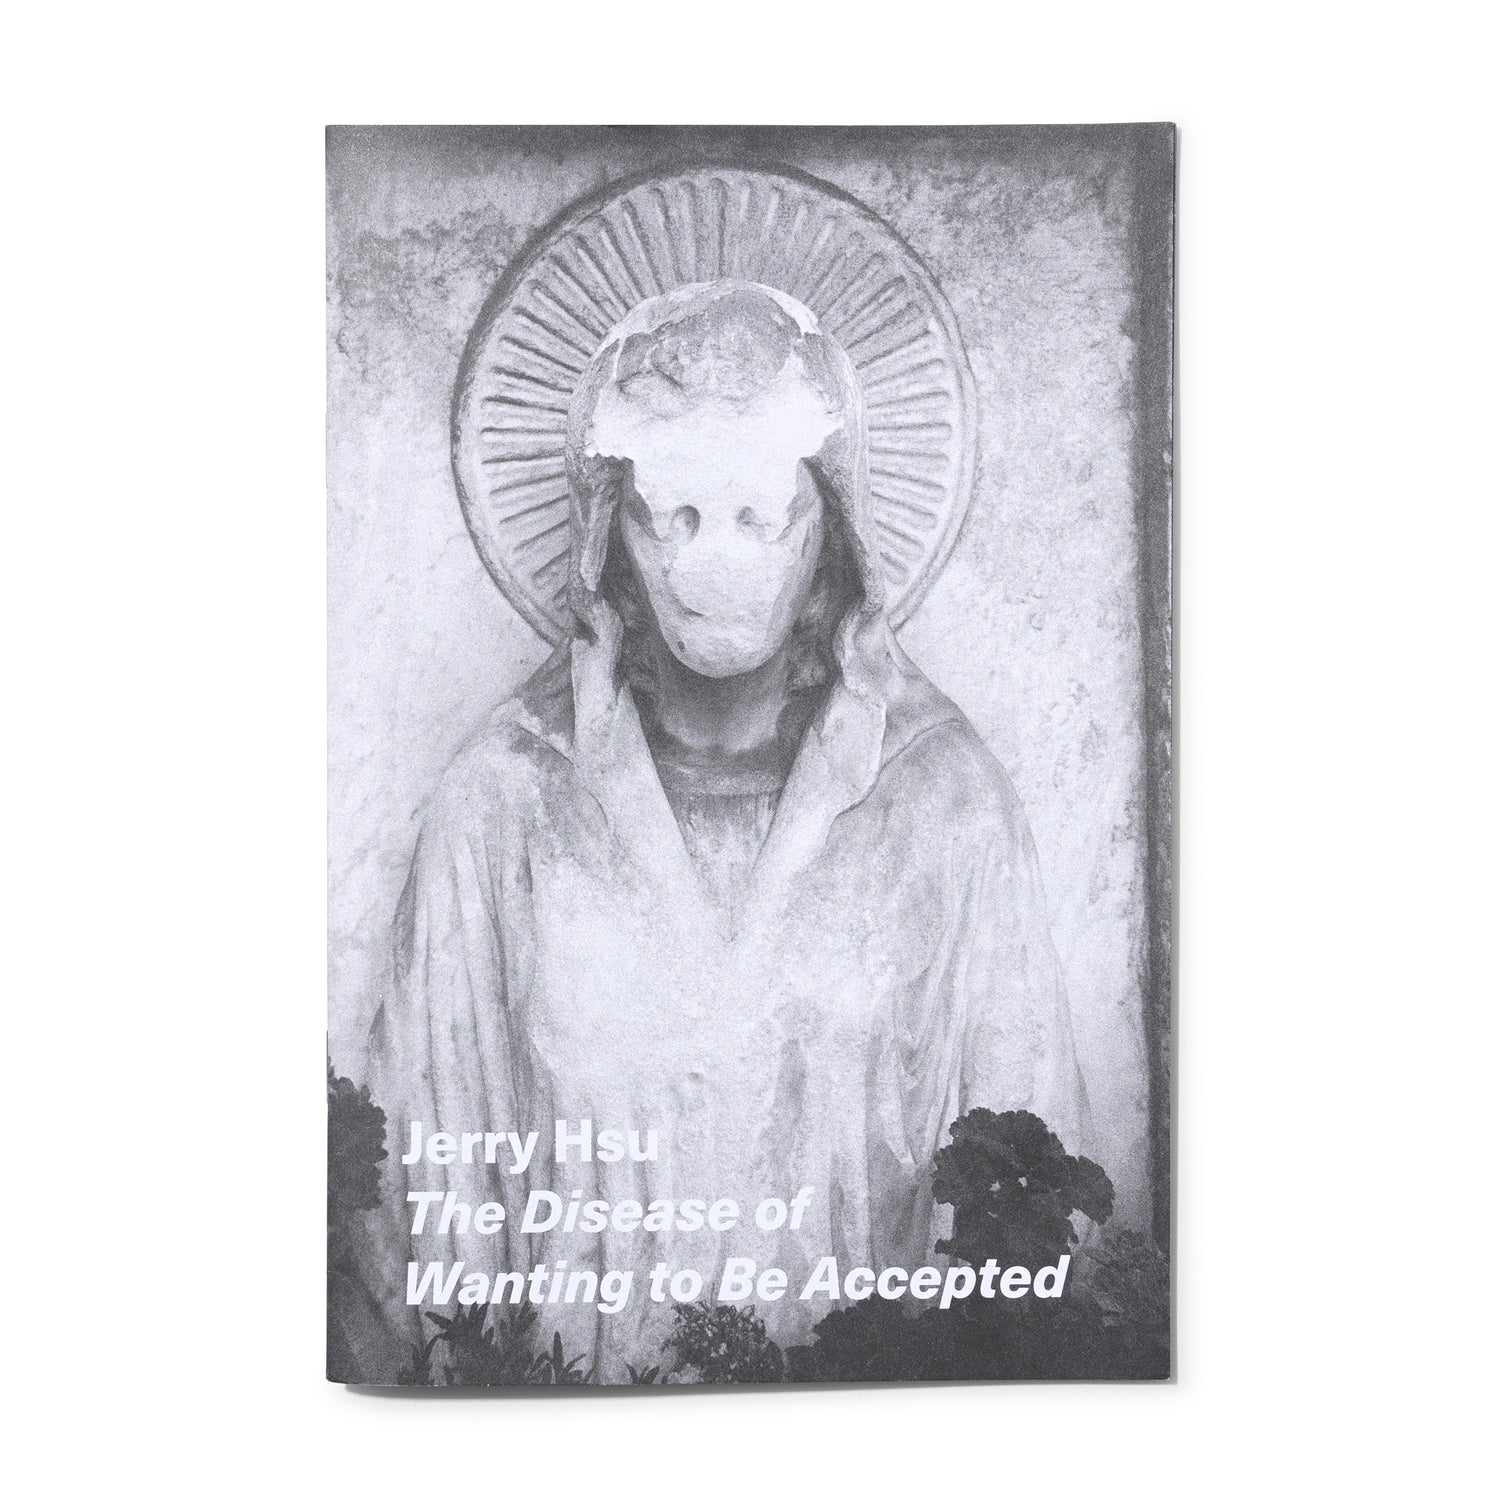 Jerry Hsu - 'The Disease of Wanting to Be Accepted' Zine